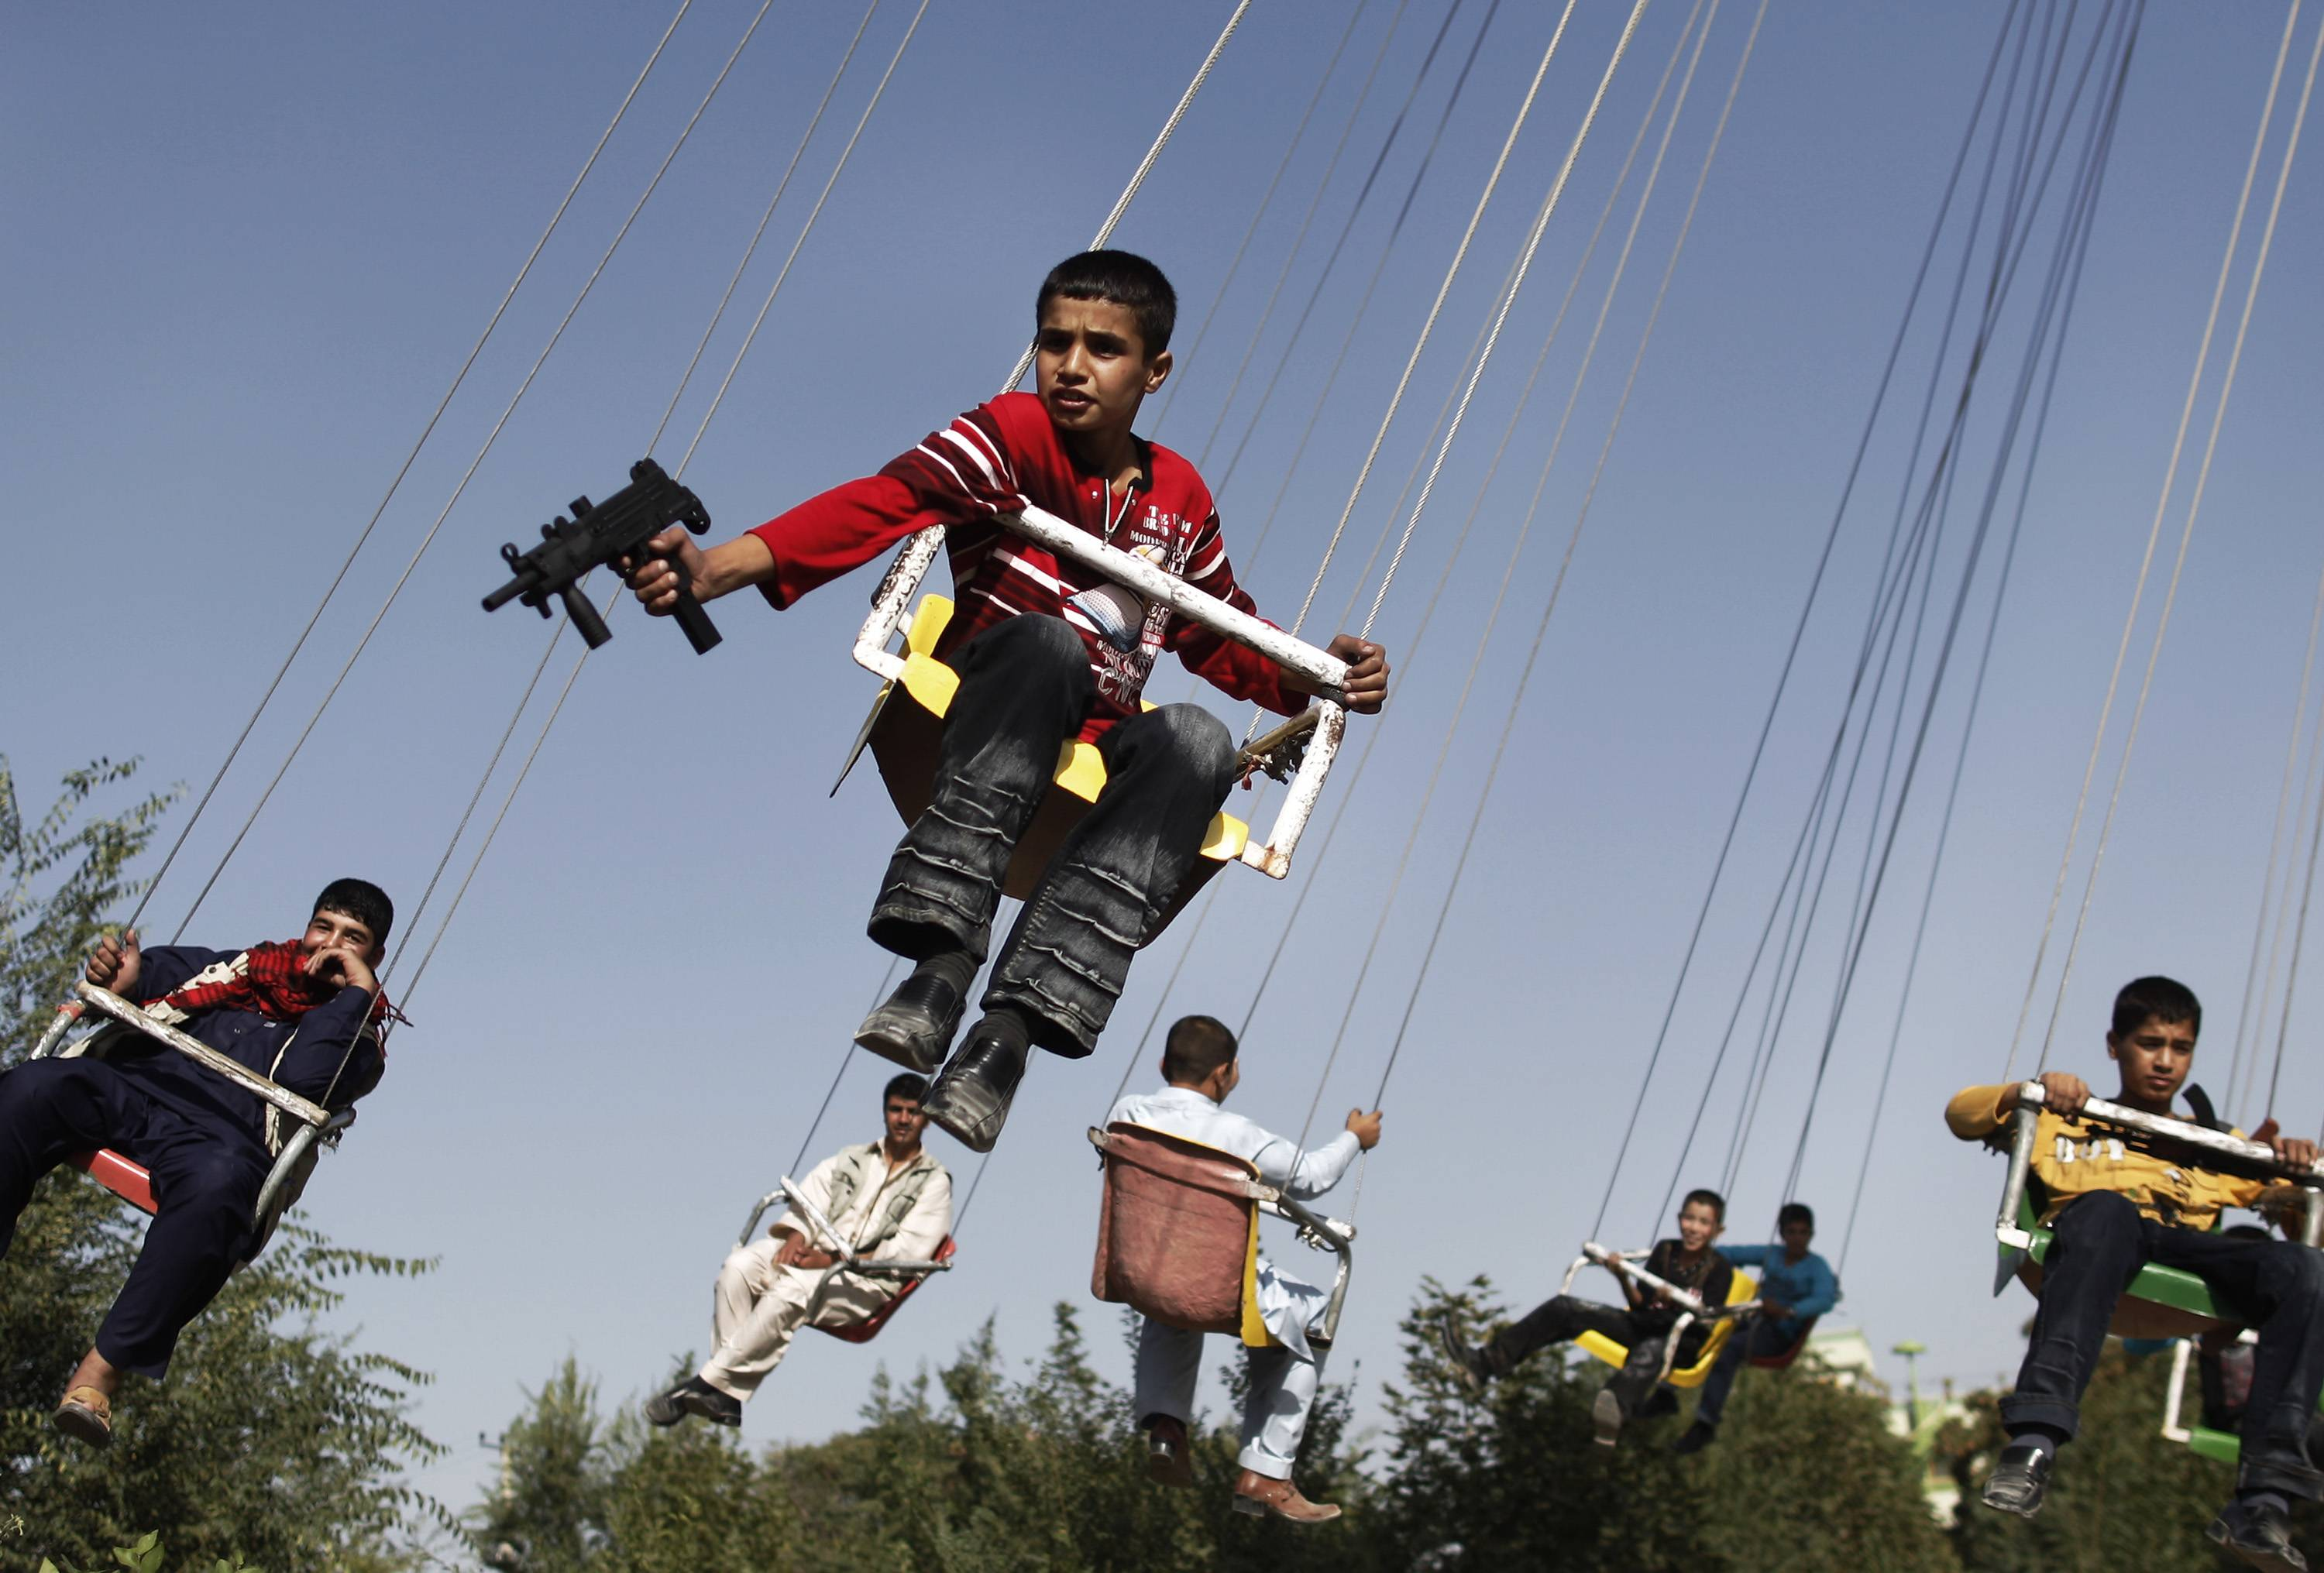 In this Sunday, Sept. 20, 2009 file photo made by Associated Press photographer Anja Niedringhaus, an Afghan boy holds a toy gun as he enjoys a ride with others on a merry-go-round to celebrate the Eid al-Fitr festival, in Kabul, Afghanistan.